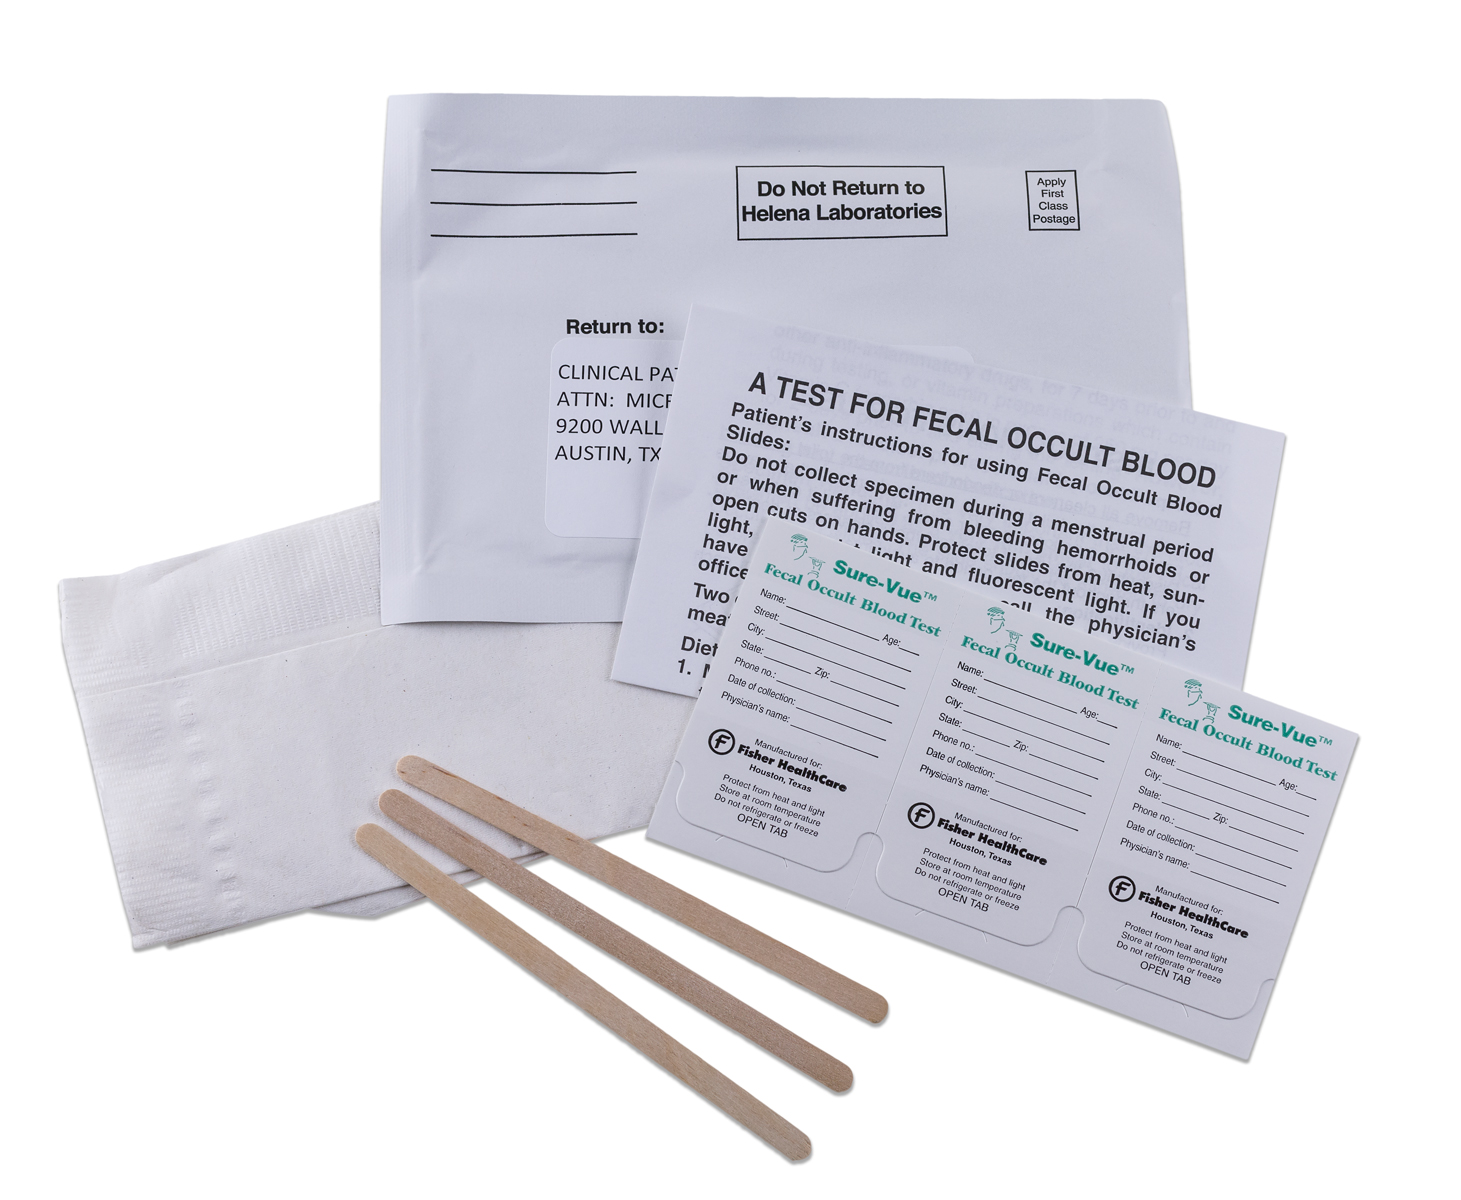 A test of fecal occult blood includes three stir sticks and three fecal occult labels as wll as a sell addressed return envelope